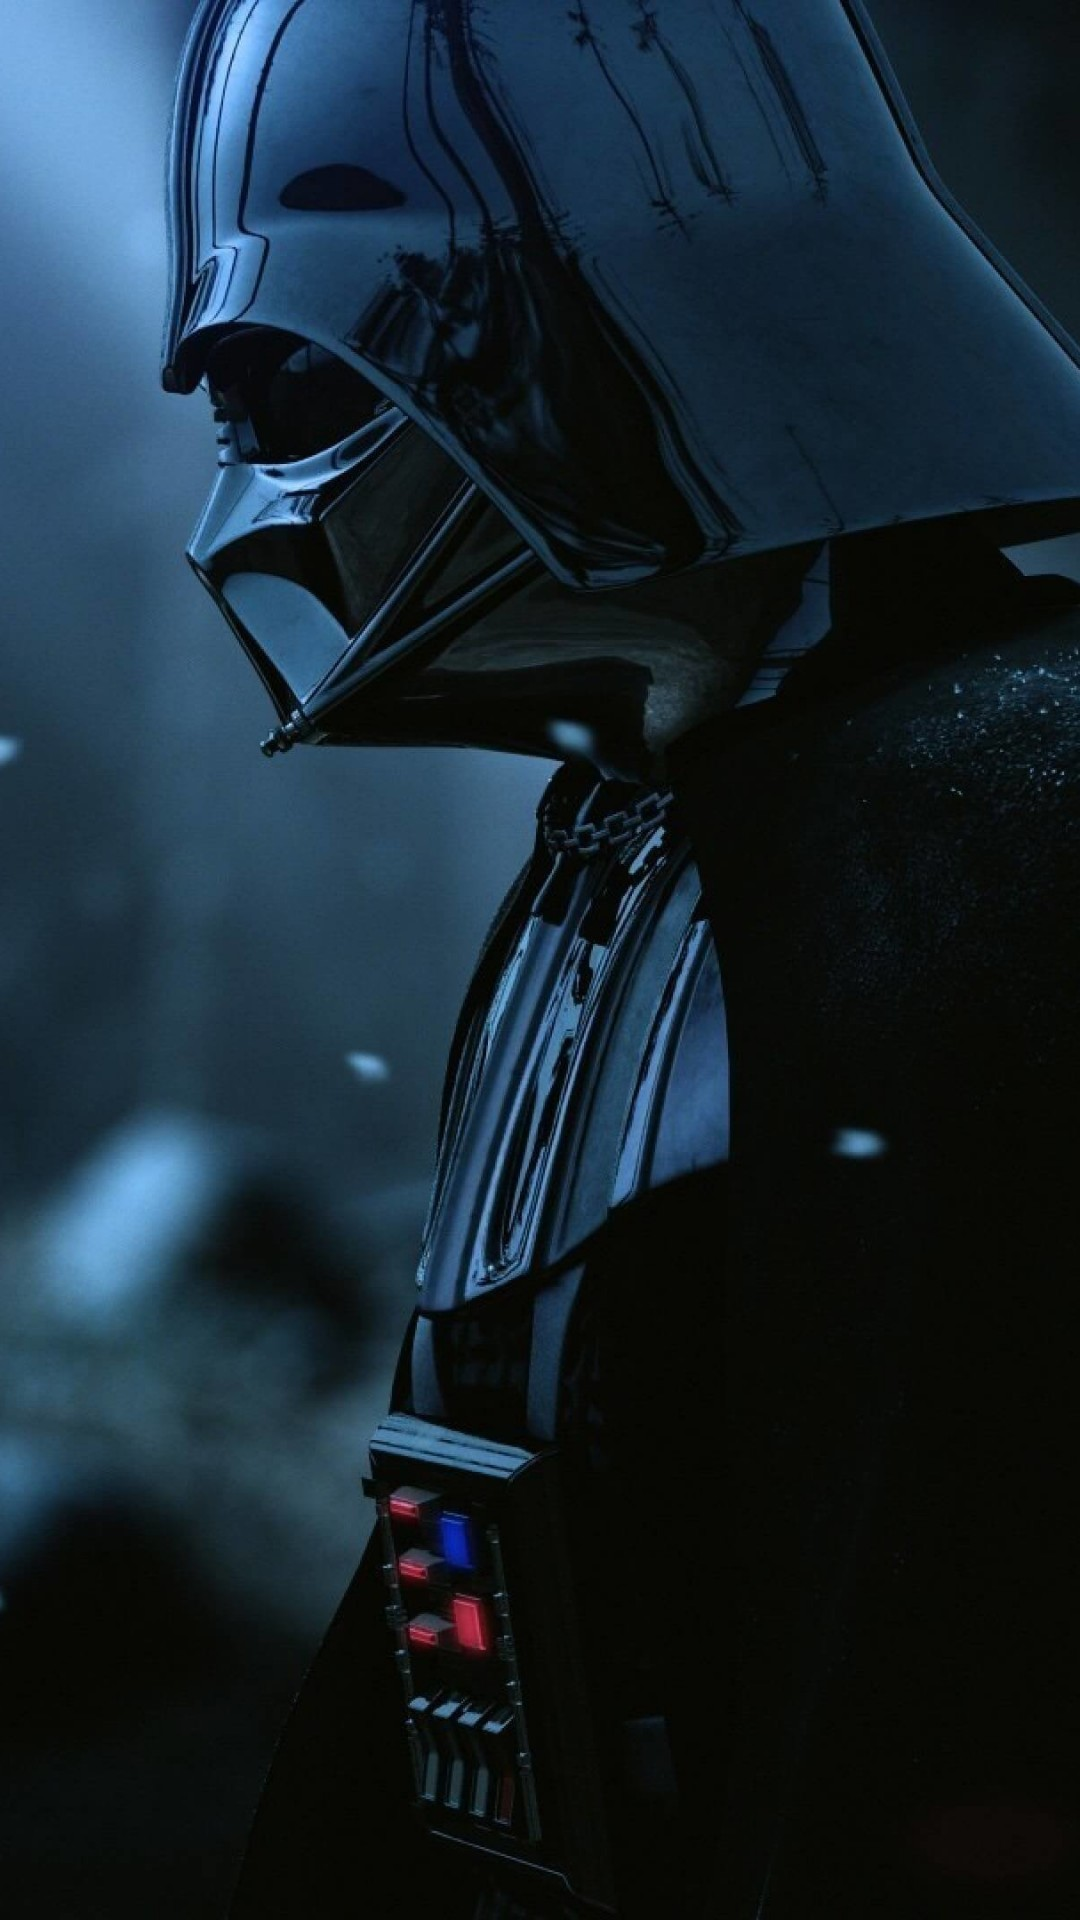 Darth Vader - The Force Unleashed 2 Wallpaper for LG G2